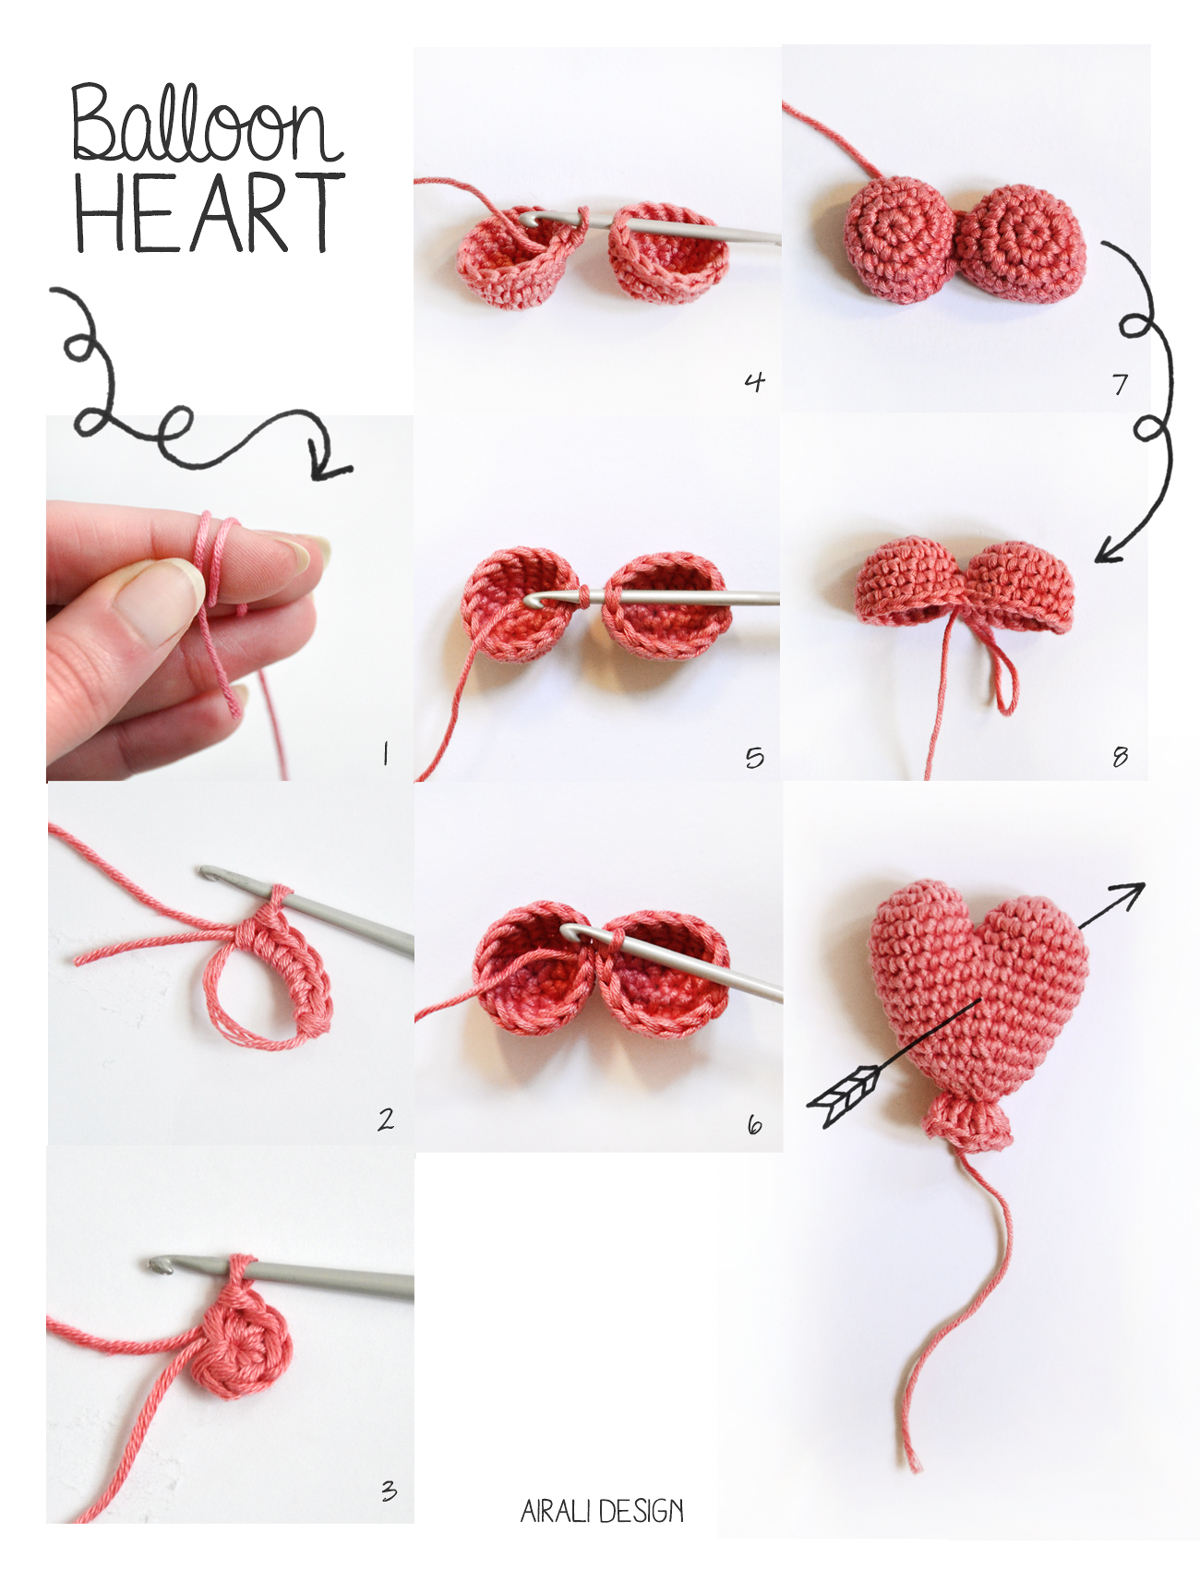 balloon-heart-steps-airali